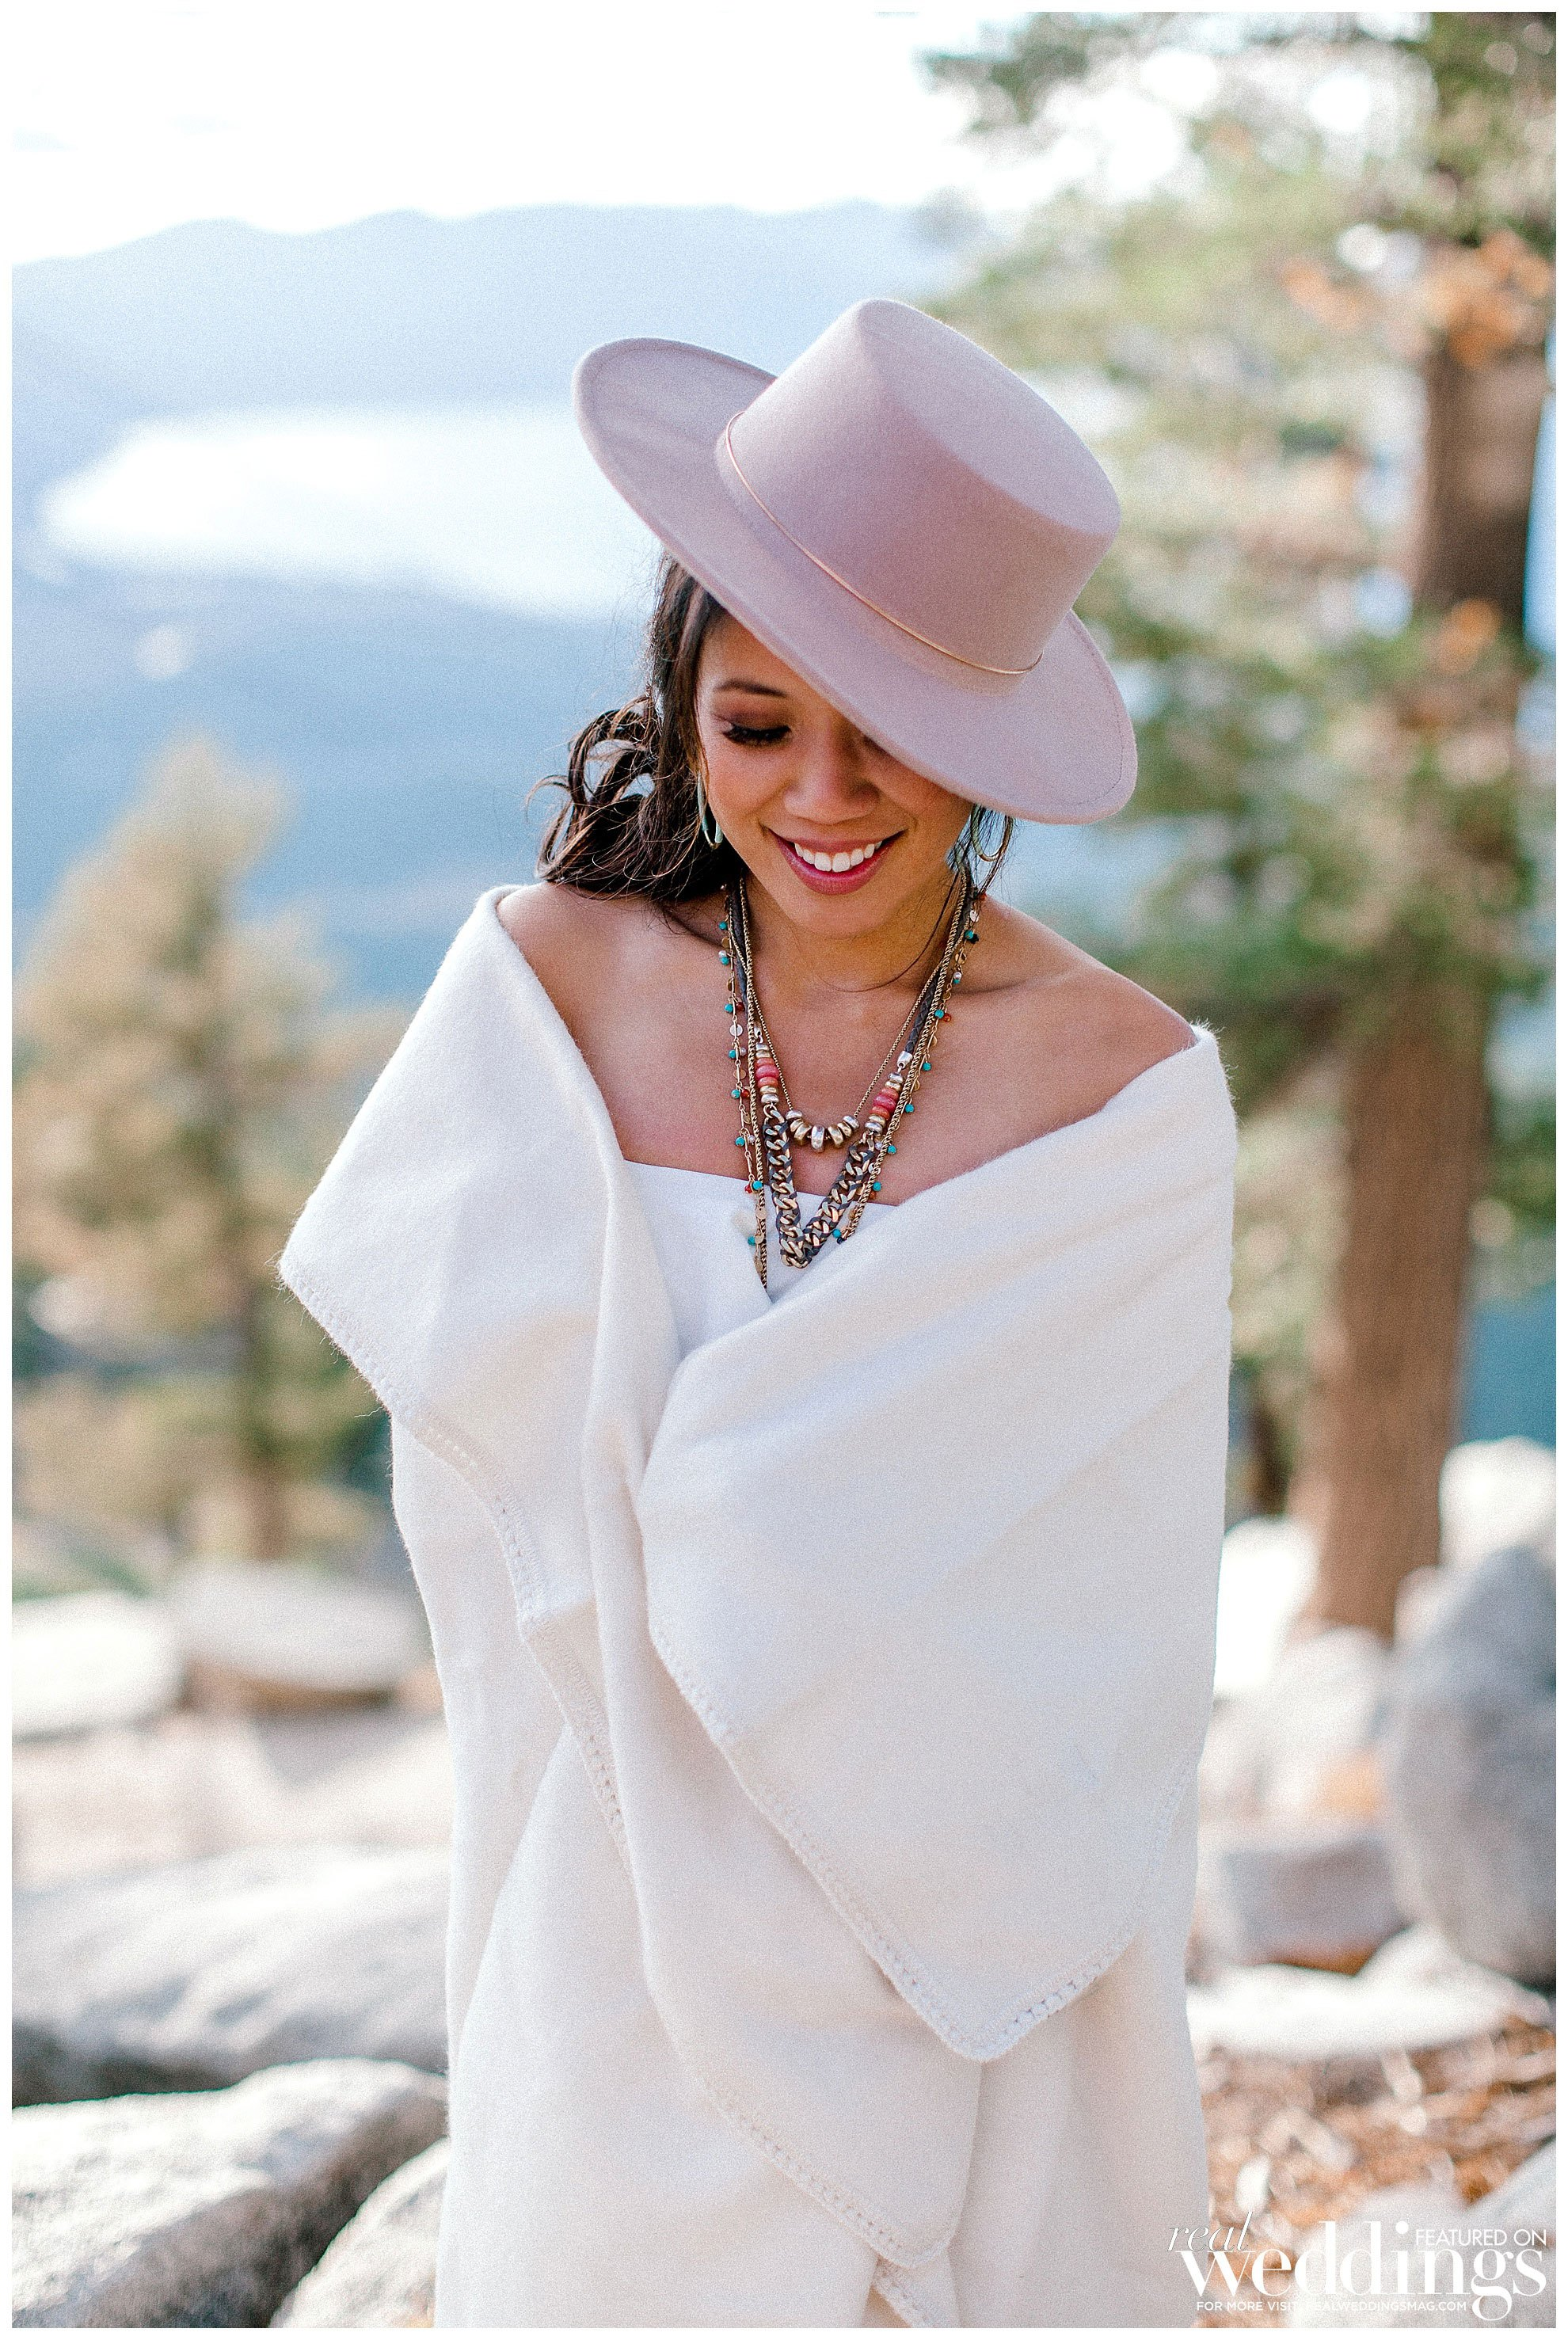 Kathryn-White-Photography-Sacramento-Real-Weddings-Magazine-In-The-Clouds-Layout_0039.jpg